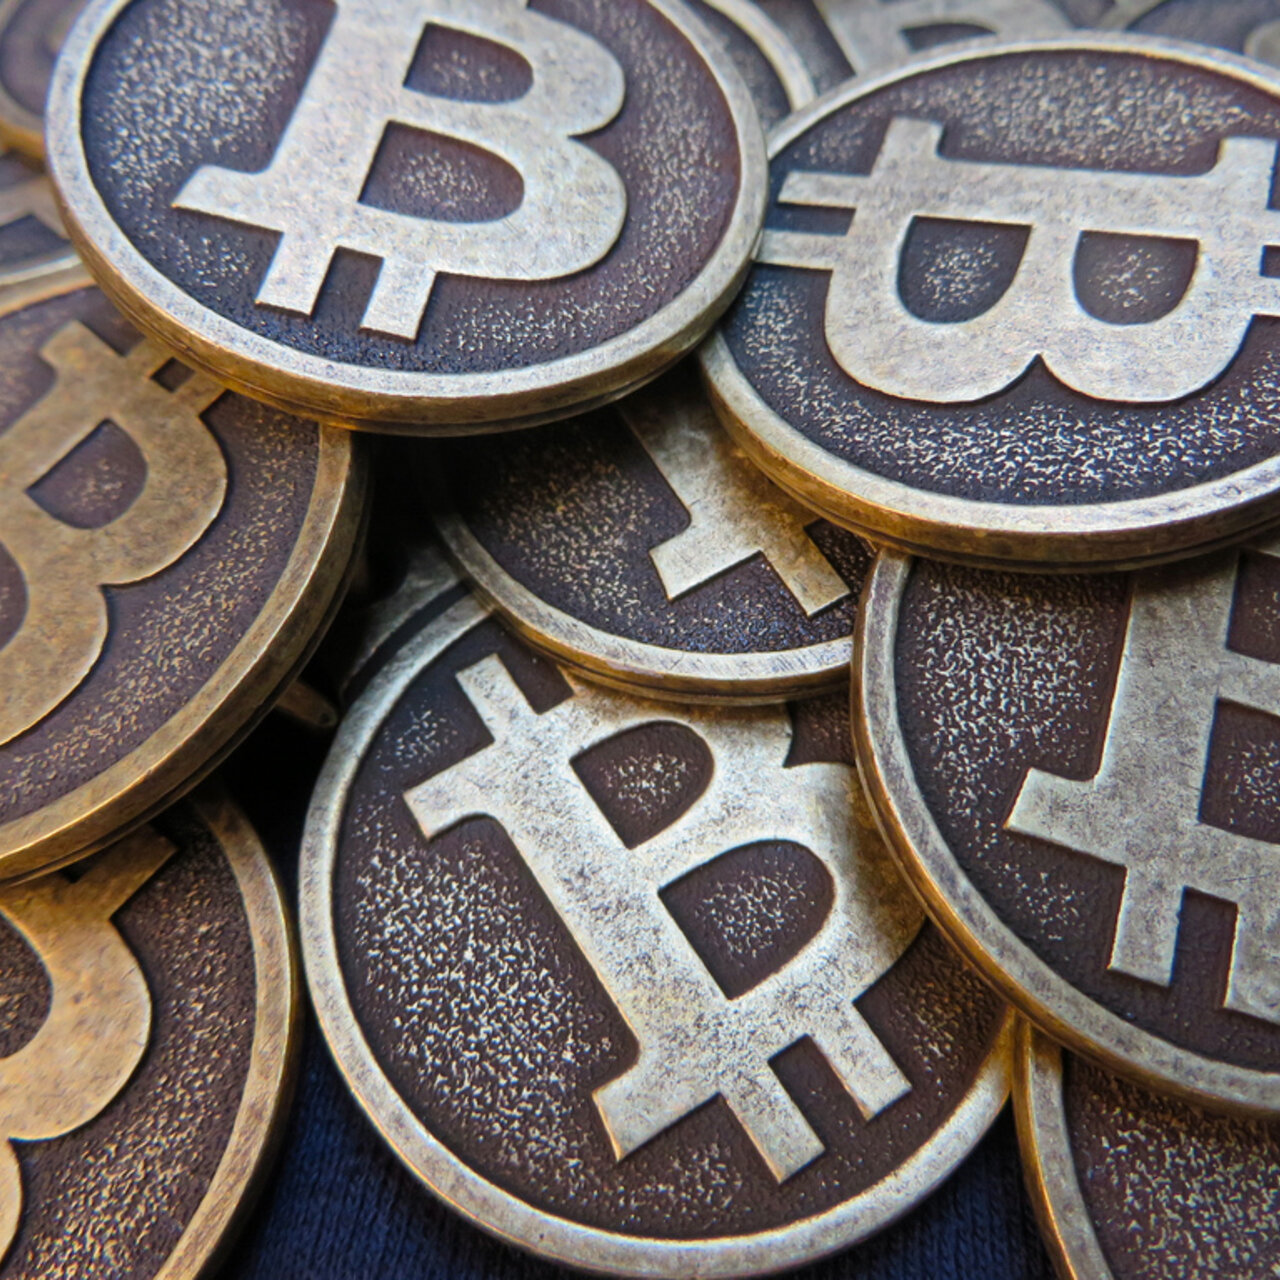 Bitcoin price prediction: BTC/USD bulls trying to re-enter the